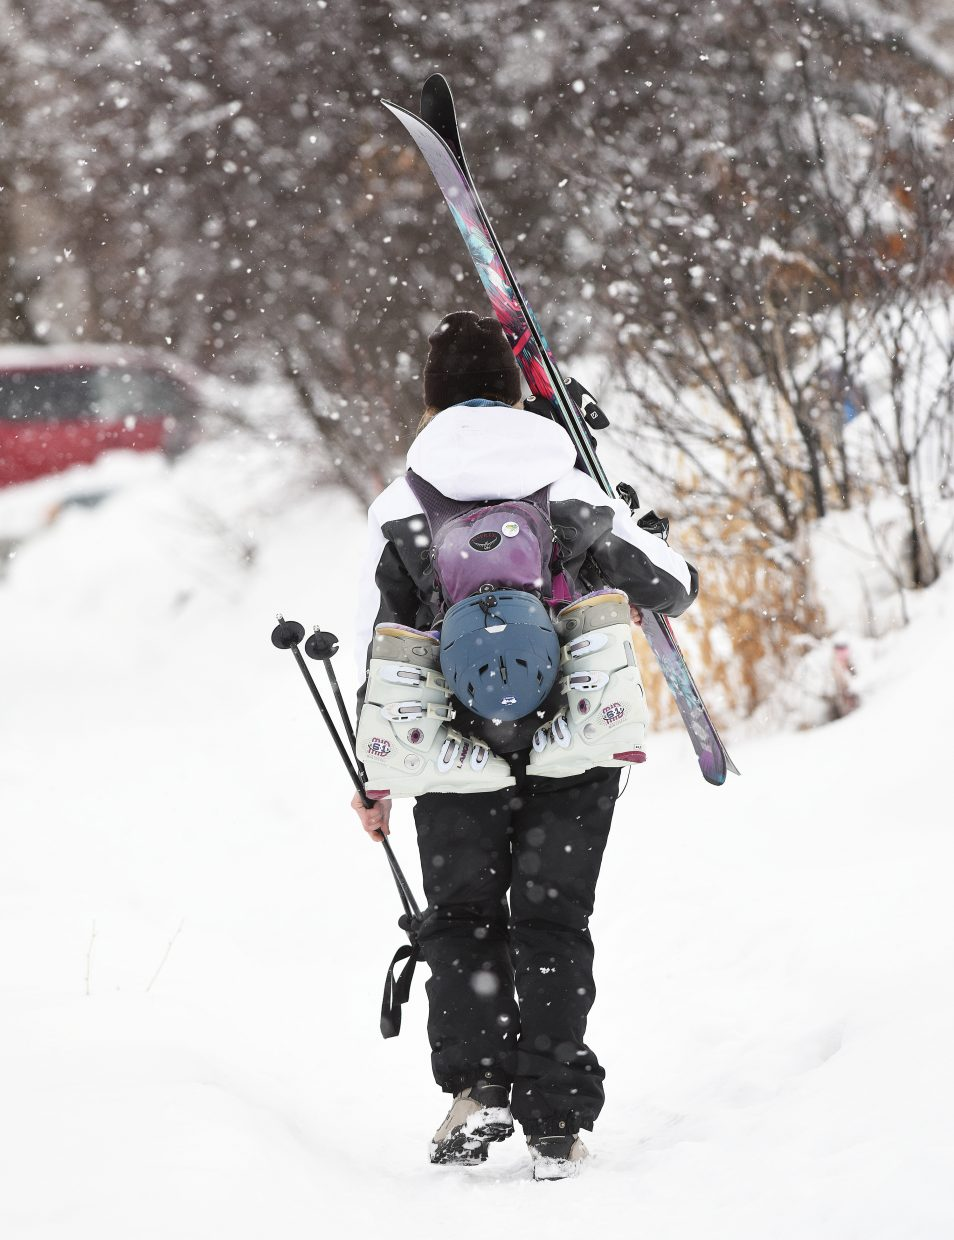 Skier Seana Carrigan heads for home  in the Fairview neighborhood after what she described as an awesome day on the mountain at the Steamboat Resort.